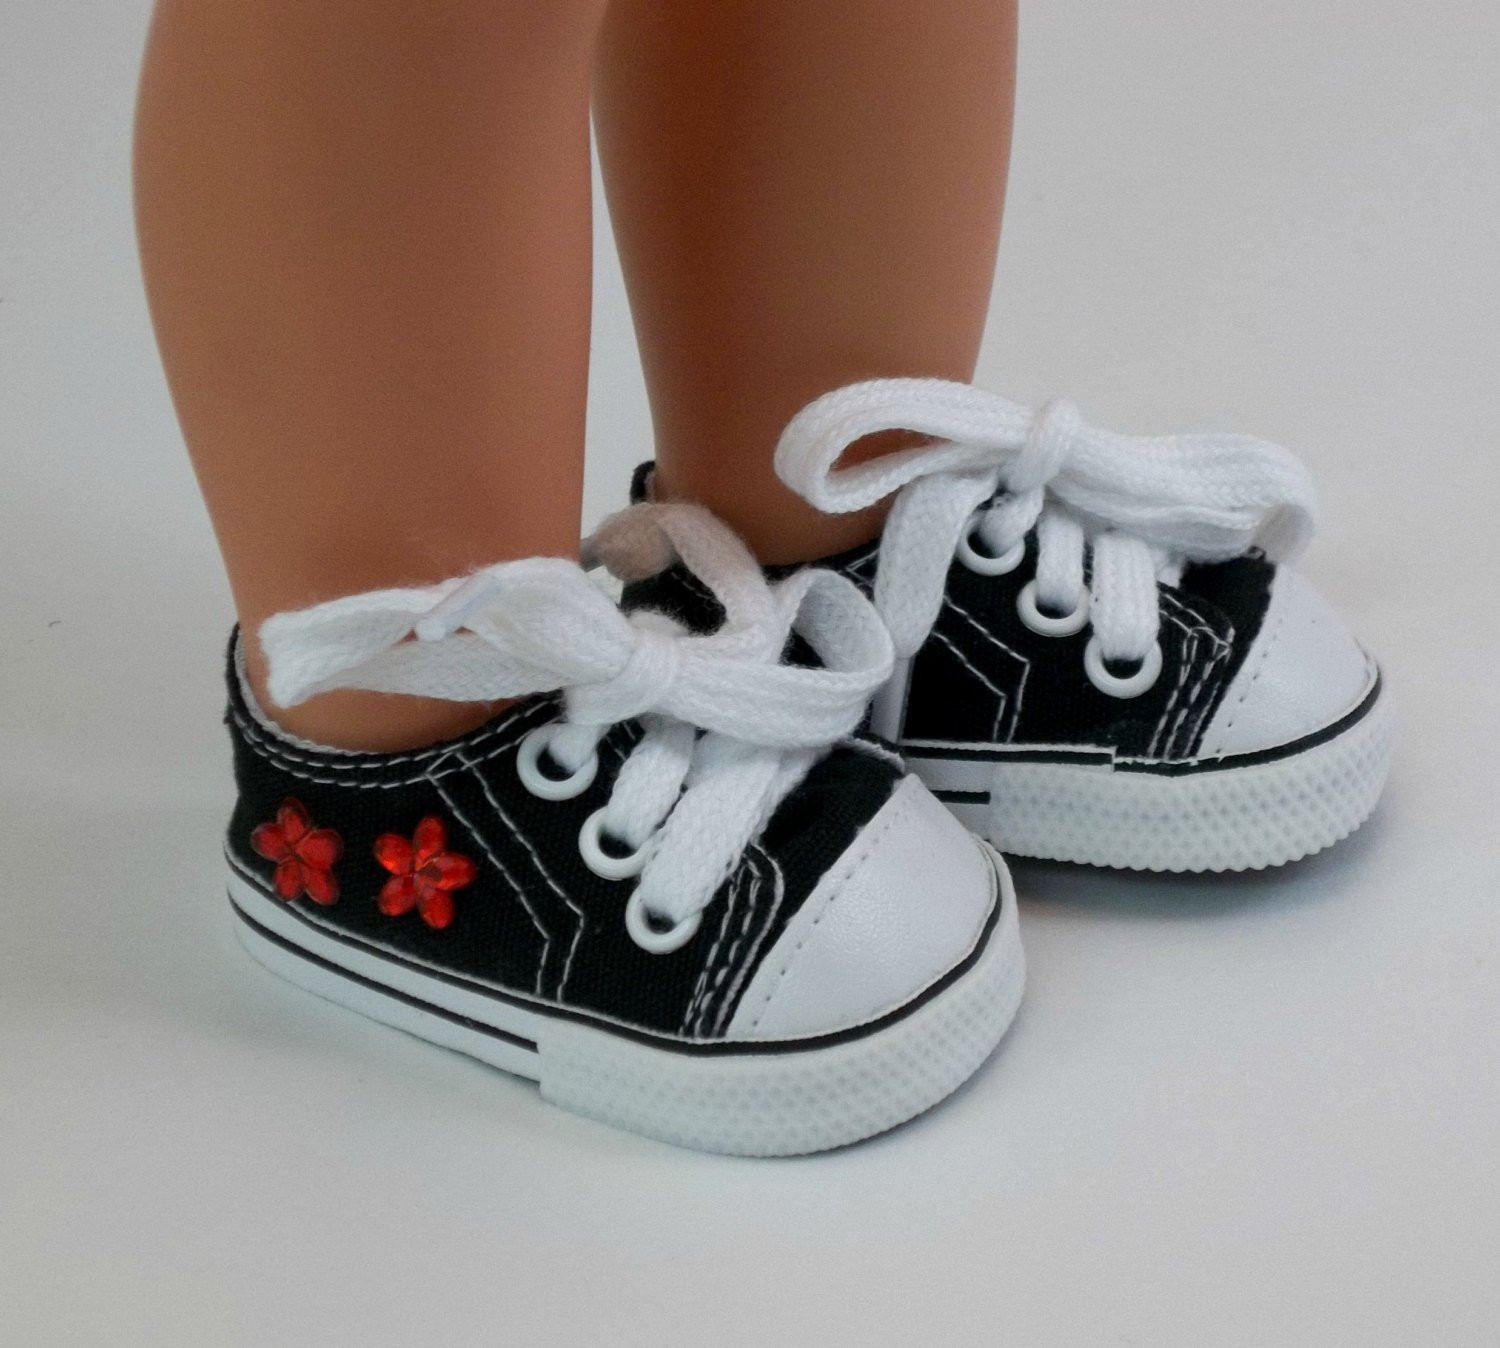 American Girl Doll Shoes Fresh 18 Inch Doll Shoes American Girl Doll Black Sneakers with Red Of Attractive 48 Models American Girl Doll Shoes